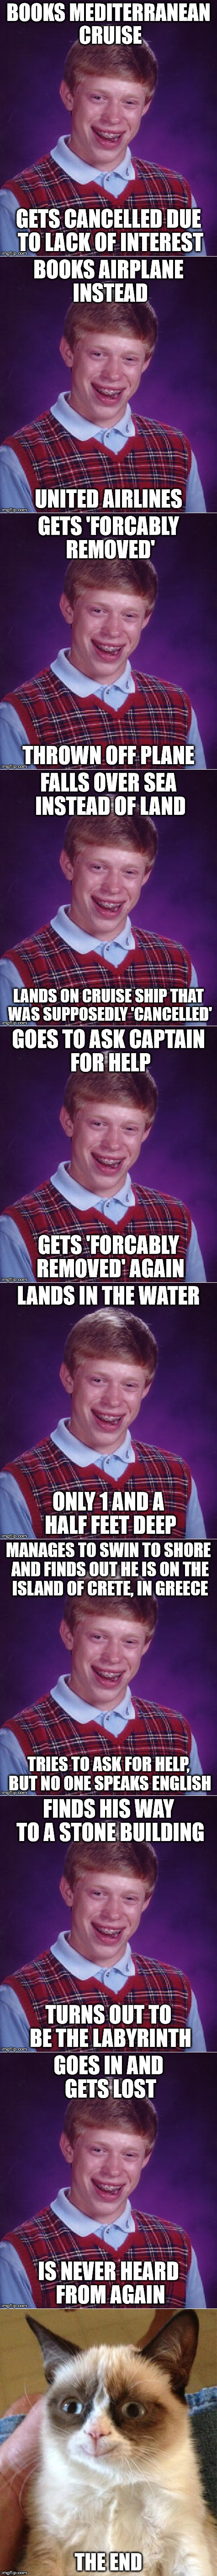 Bad Luck Brian's life story. Been working on this for a while now . . . | image tagged in memes,bad luck brian,labyrinth,help,grumpy cat smiling | made w/ Imgflip meme maker